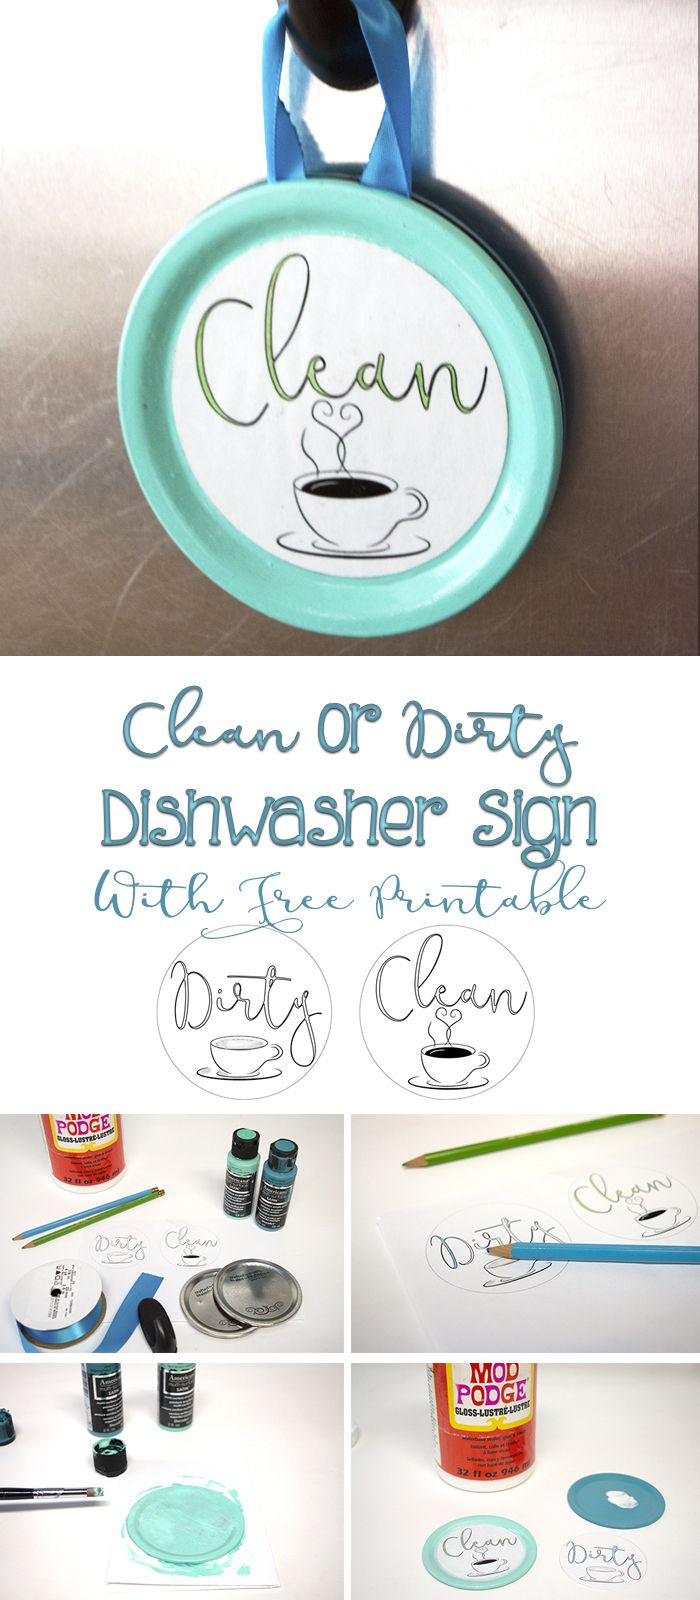 Easy Clean Or Dirty Dishwasher Sign With Free Printable - Free Printable Clean Dirty Dishwasher Sign